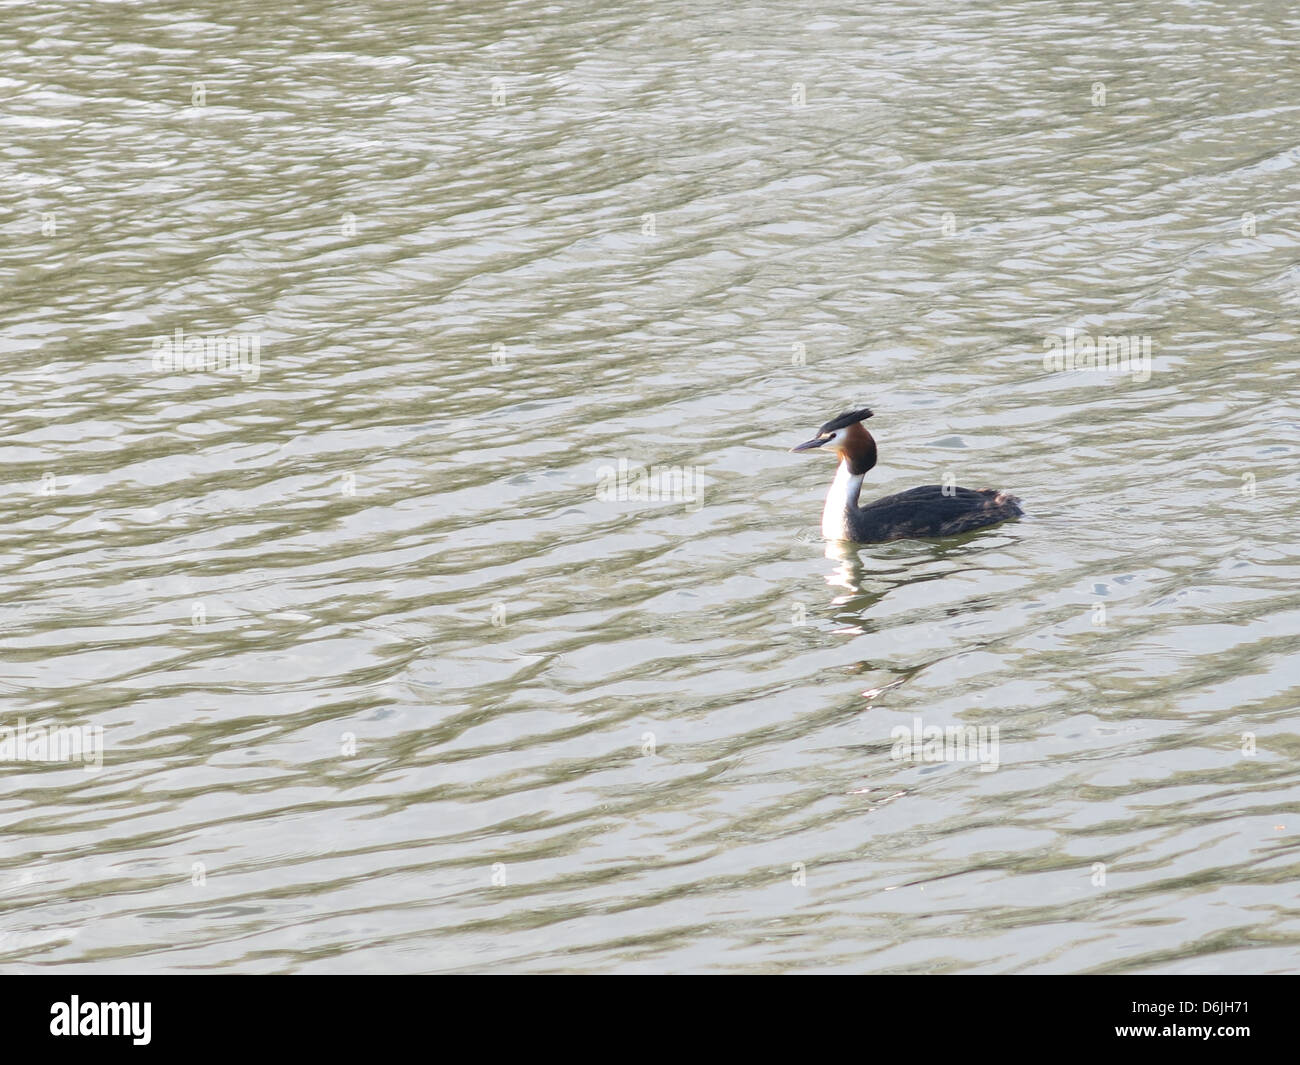 Great Crested Grebe on The River Thames, Reading, Berkshire. Stock Photo